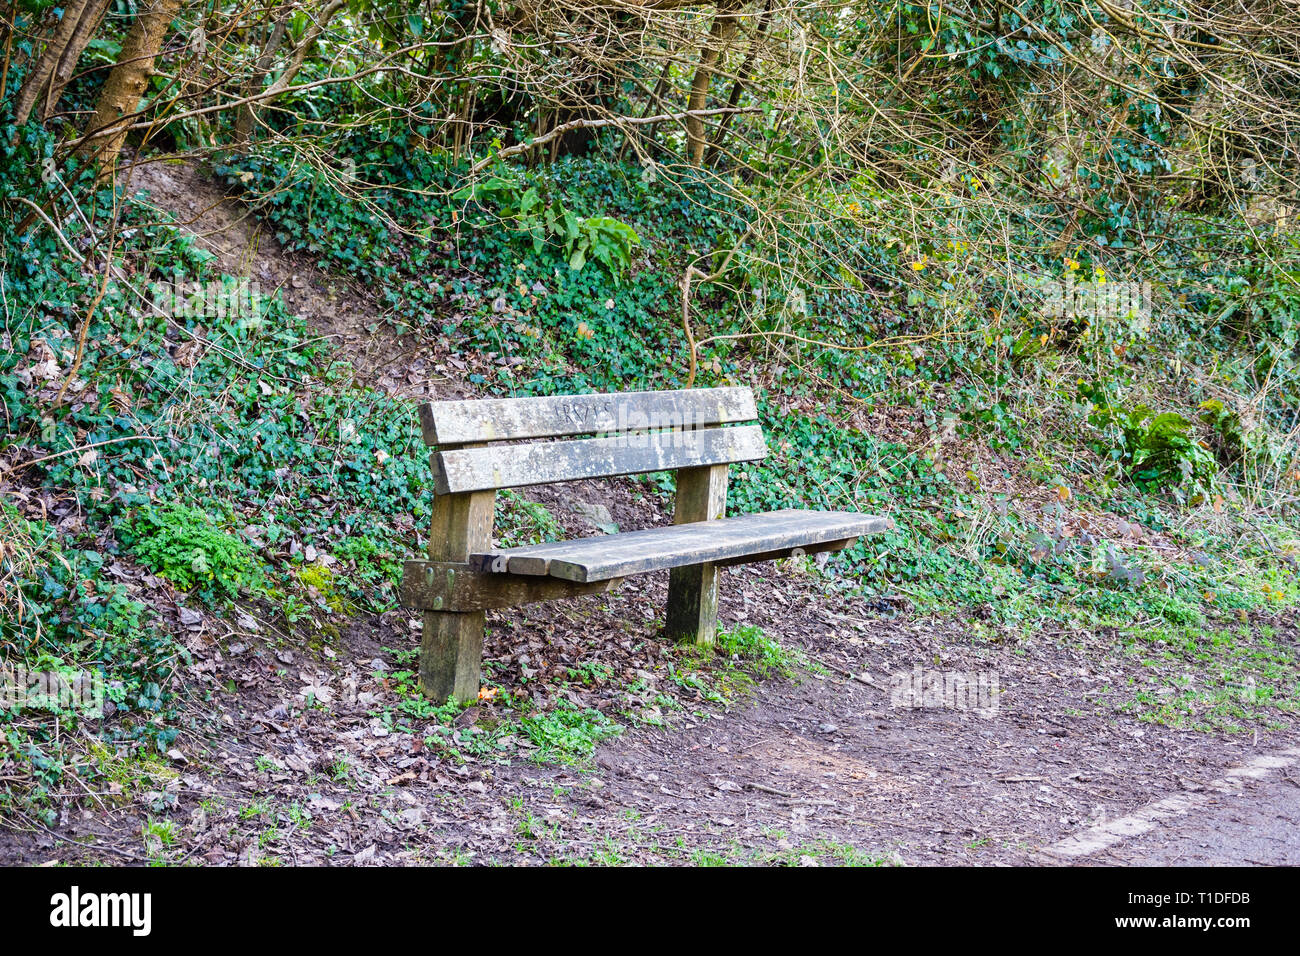 A seating bench made of wood with early spring growth and ivy on the bank behind and last years leaflitter on the floor next to a country path. Stock Photo